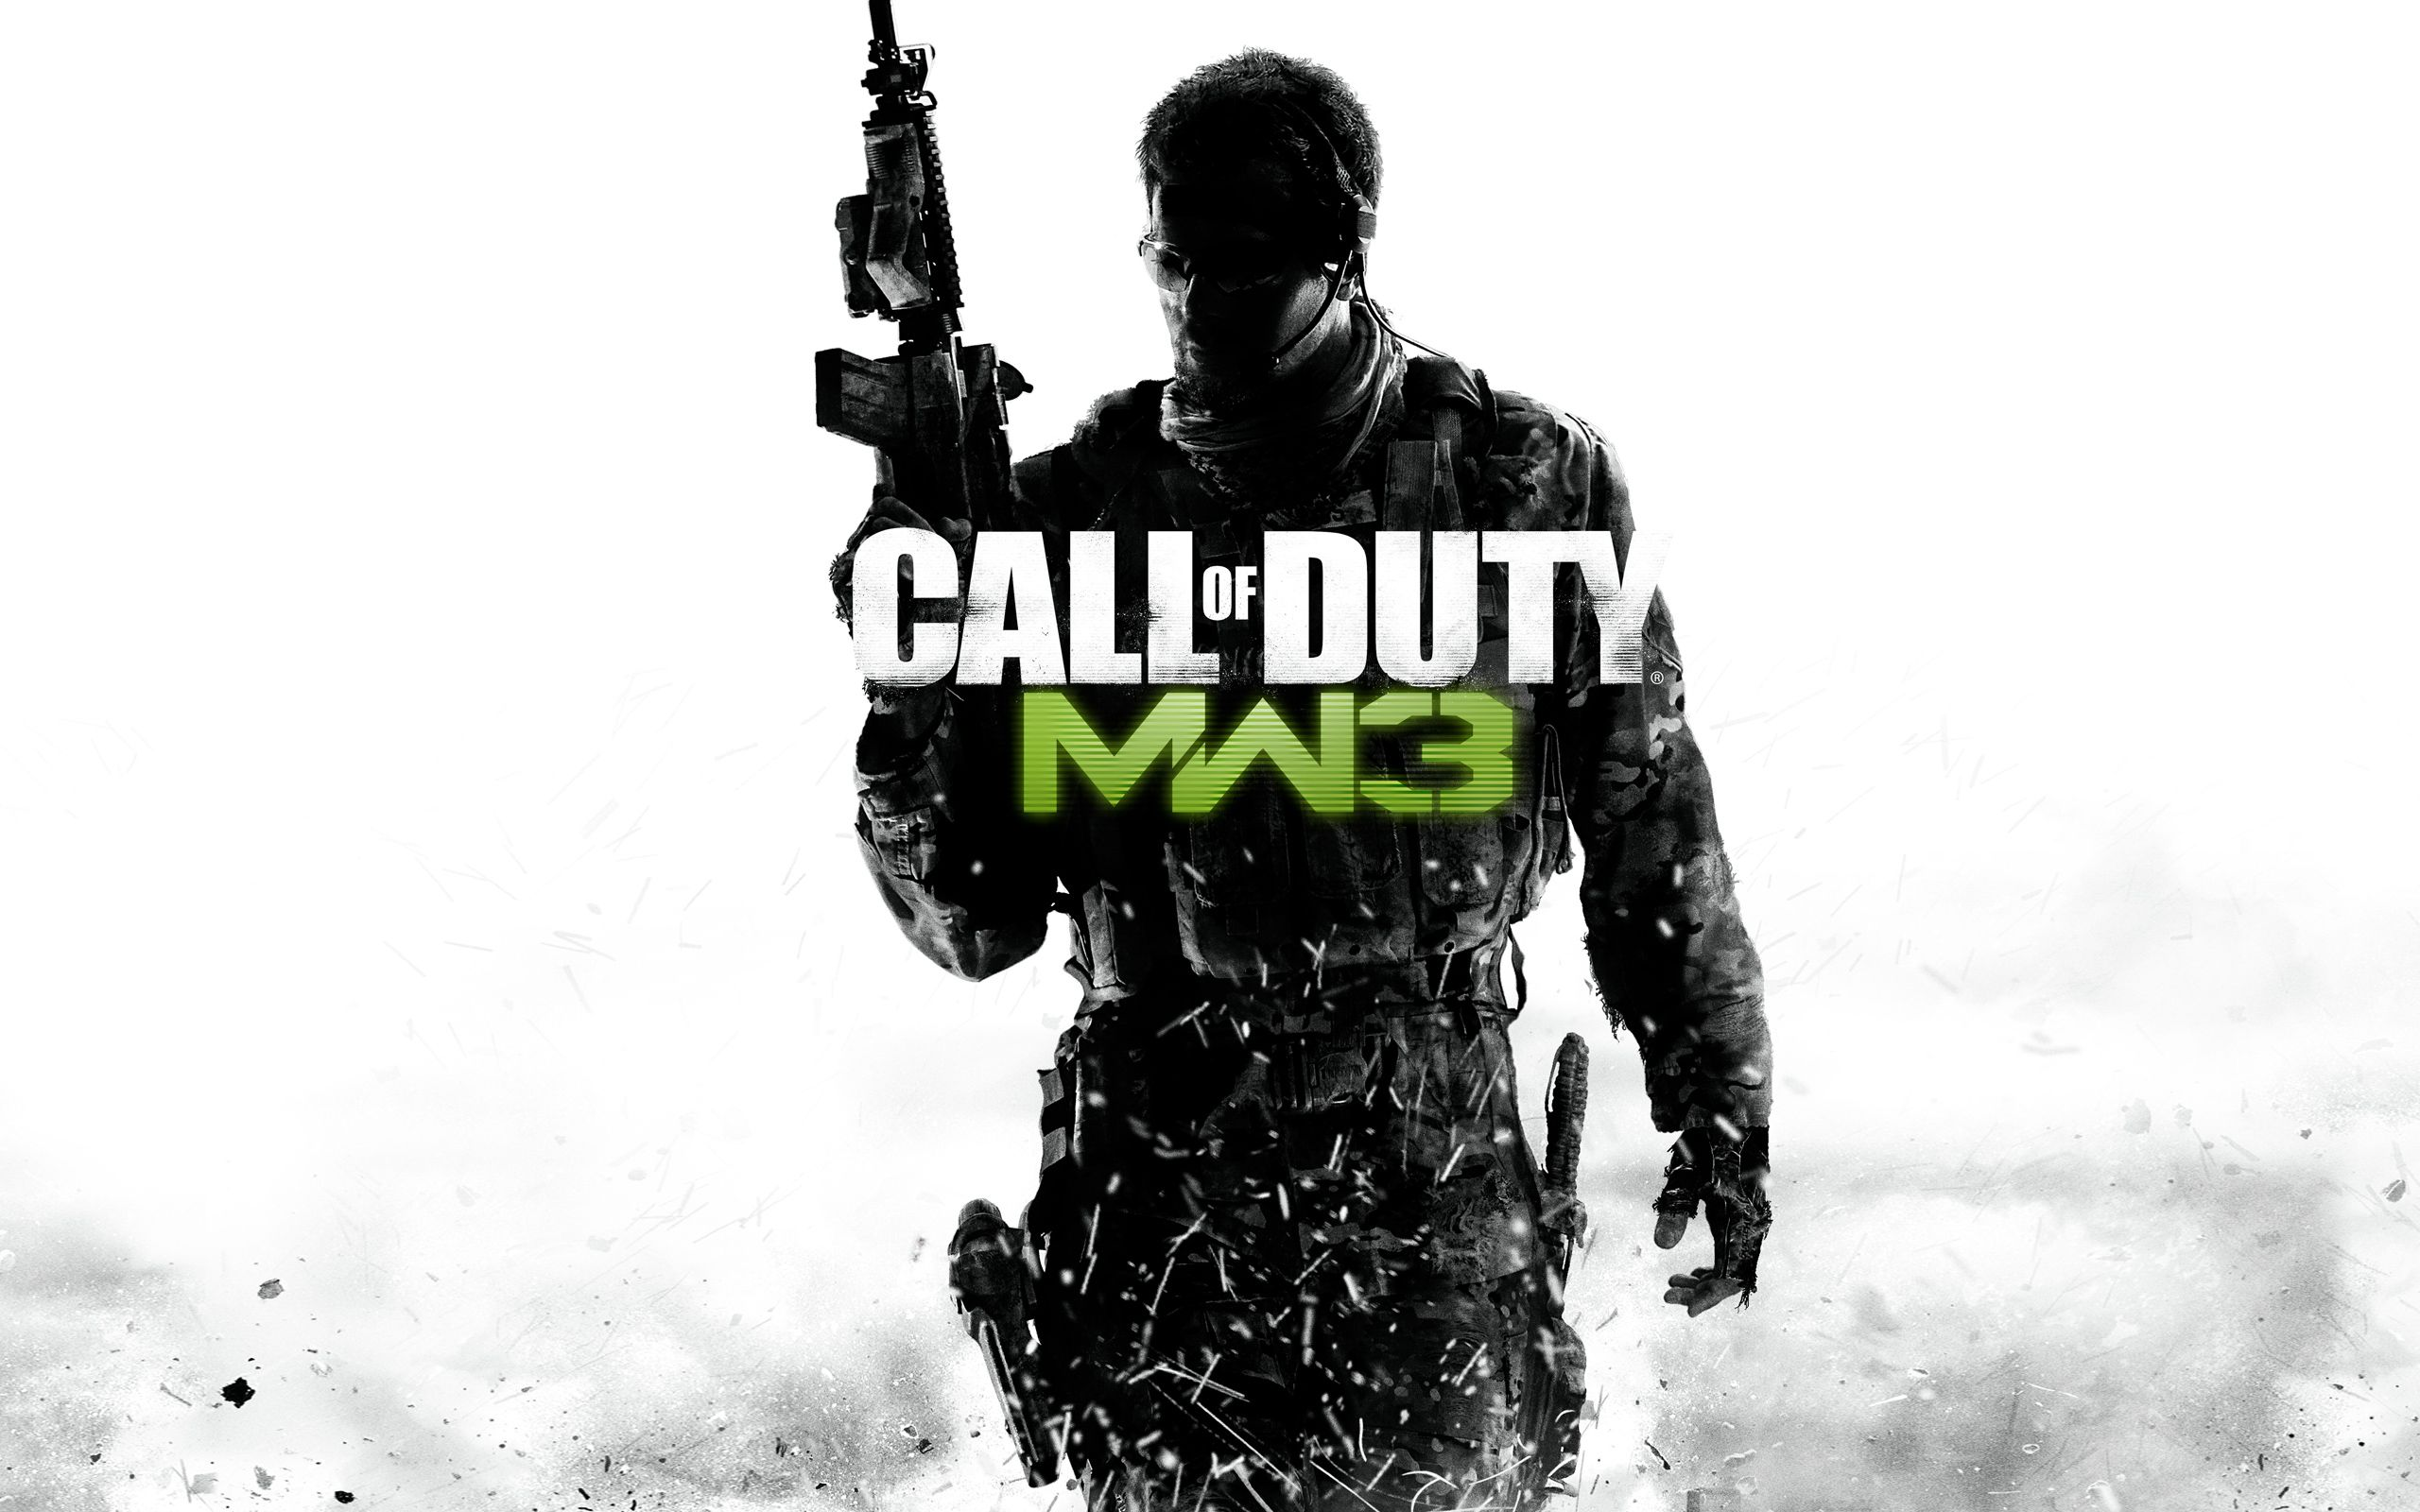 Call Of Duty Modern Warfare 3 Wallpapers Top Free Call Of Duty